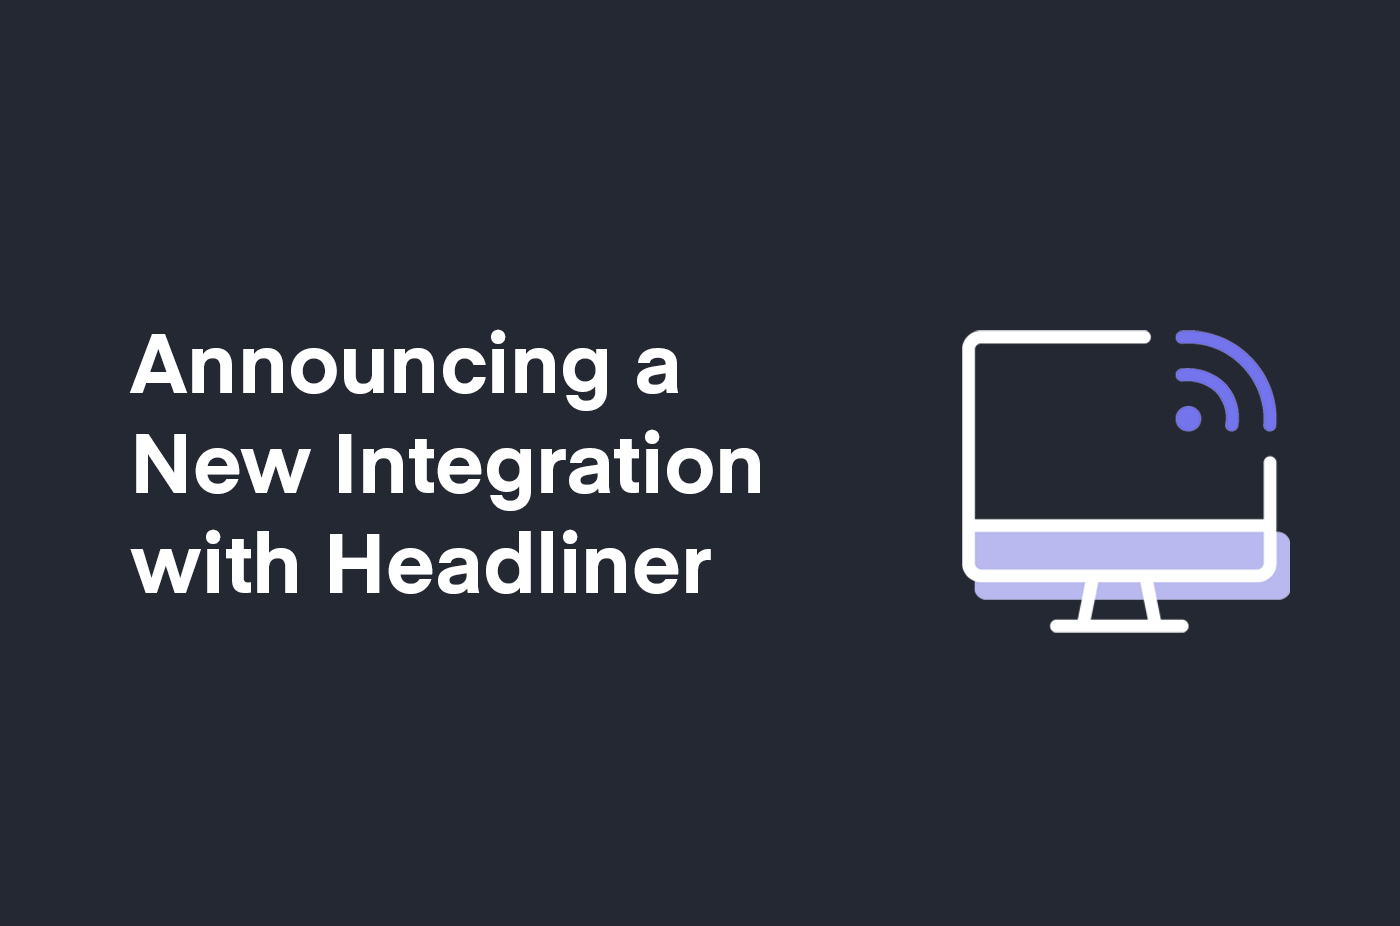 Megaphone by Spotify Expands Publisher Toolset Via New Integration With Headliner